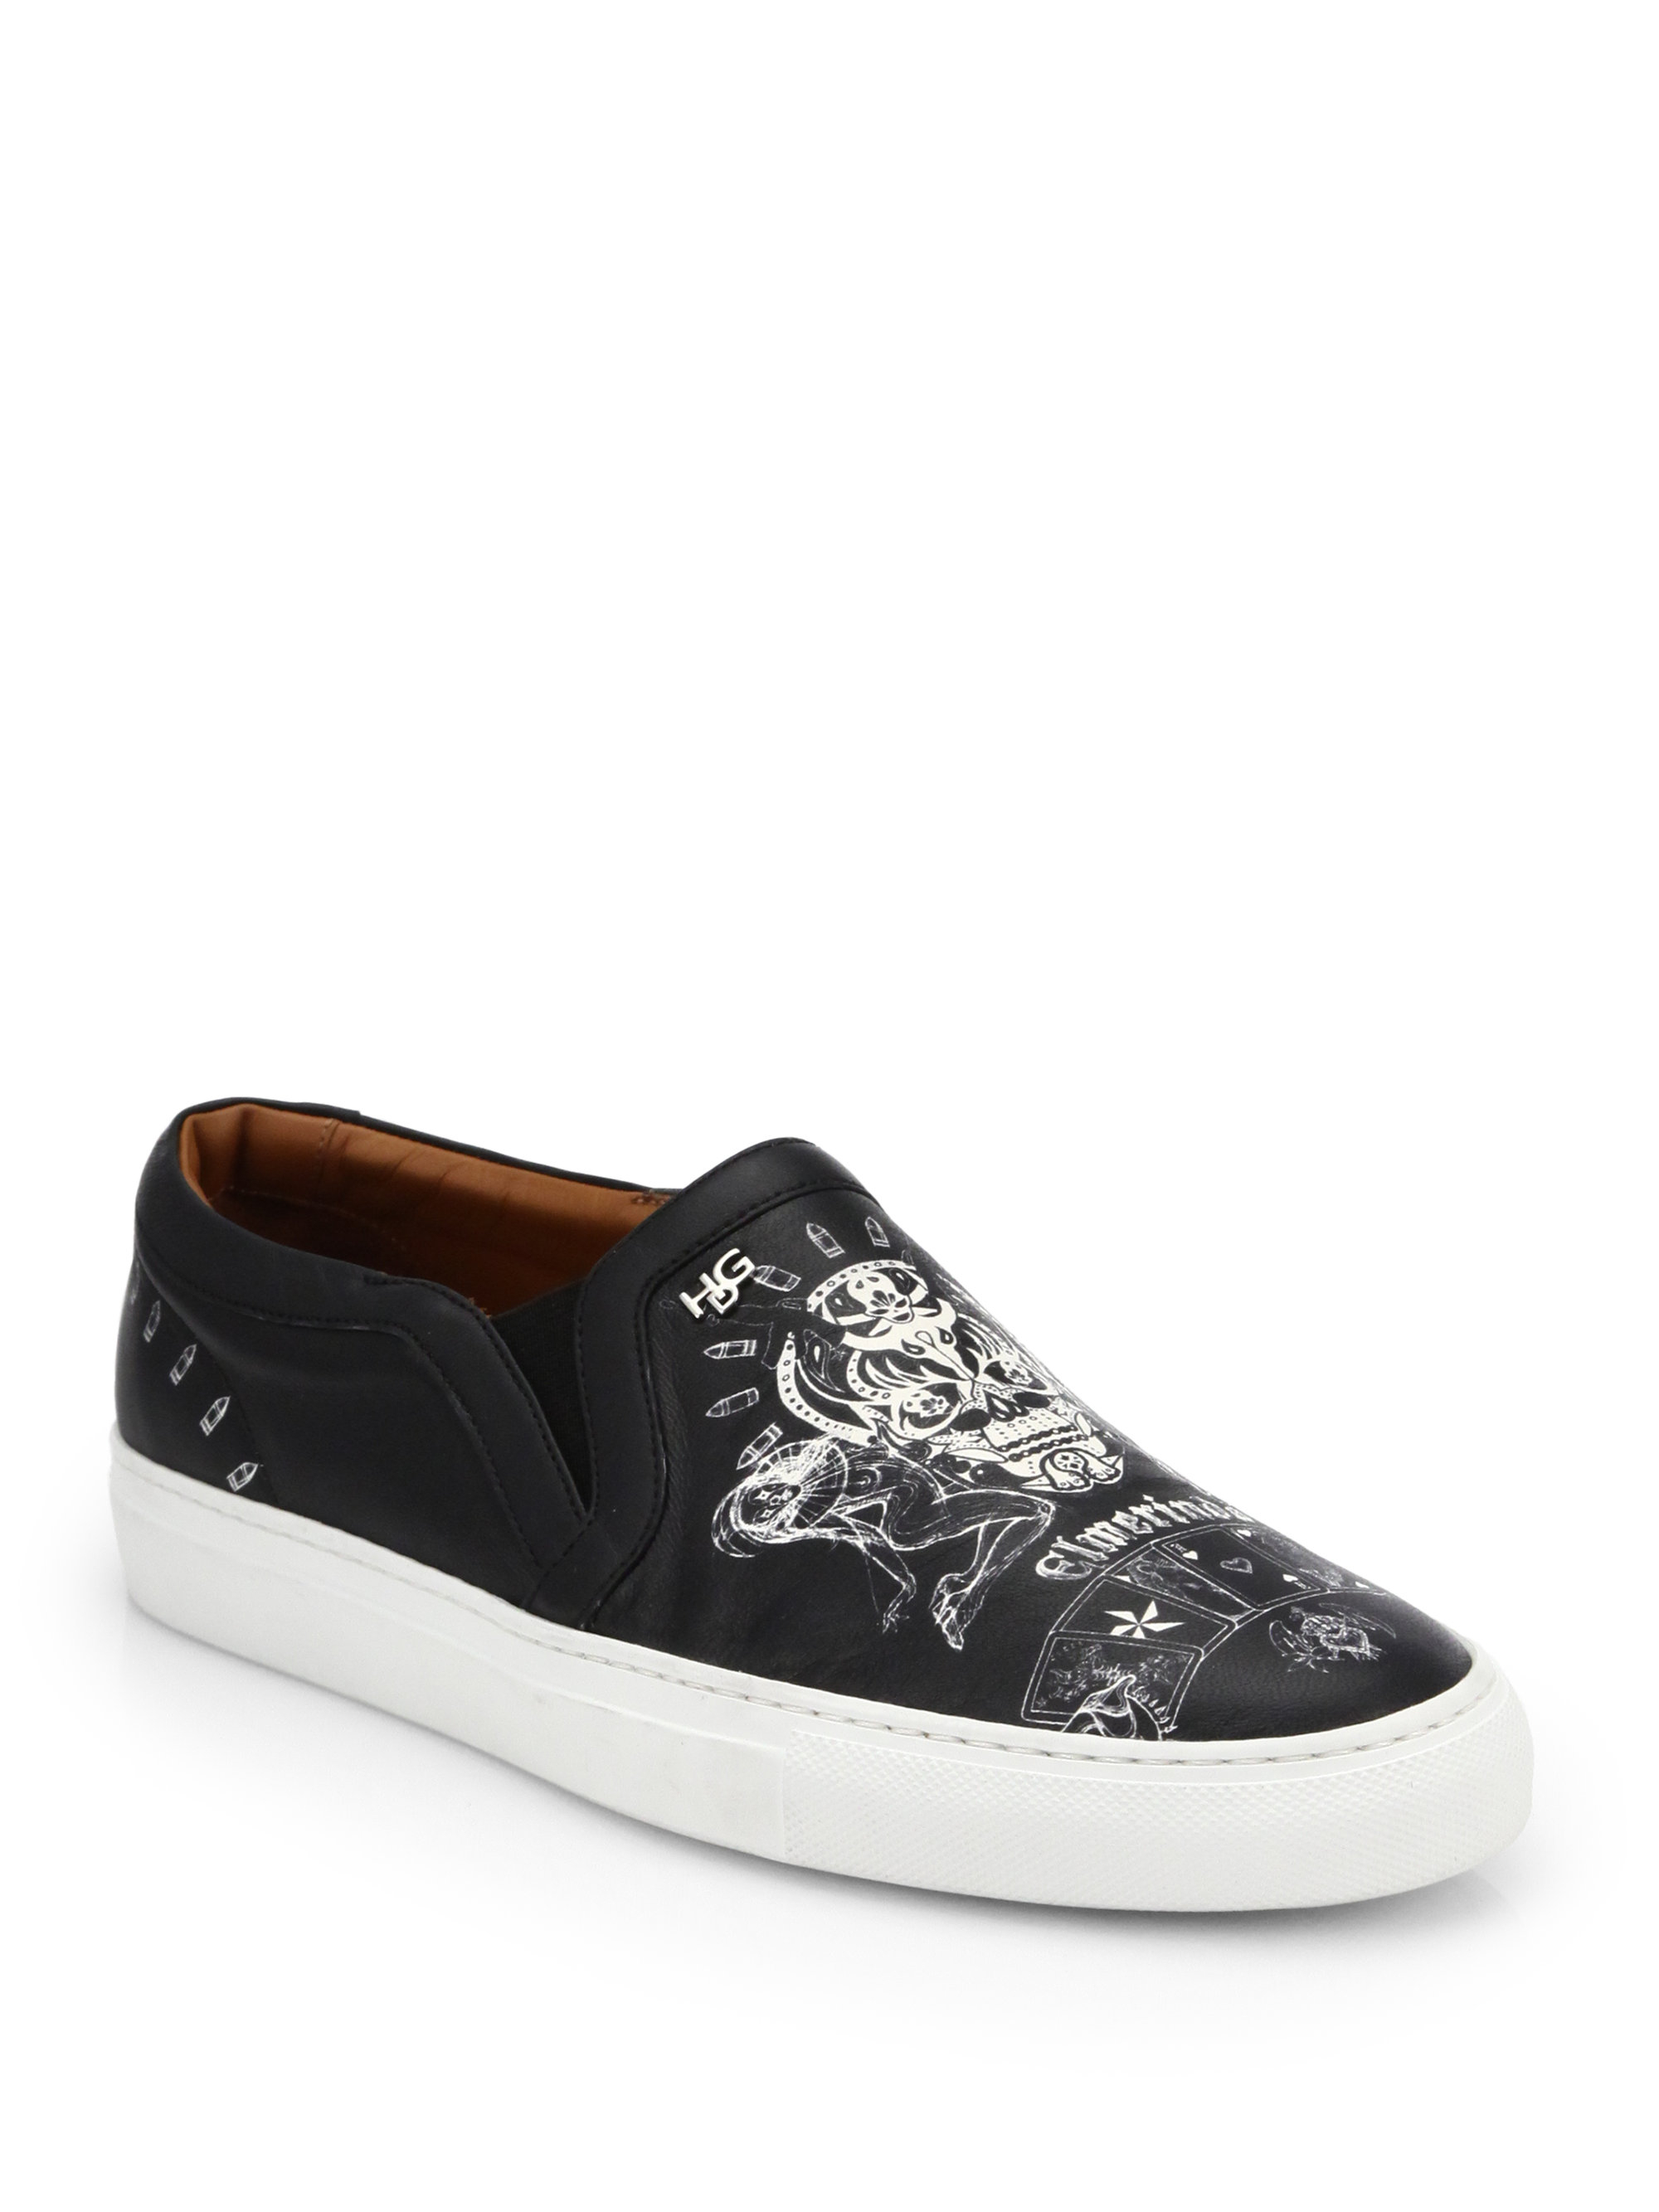 Givenchy Skull Printed Leather Skate Sneakers In Black For